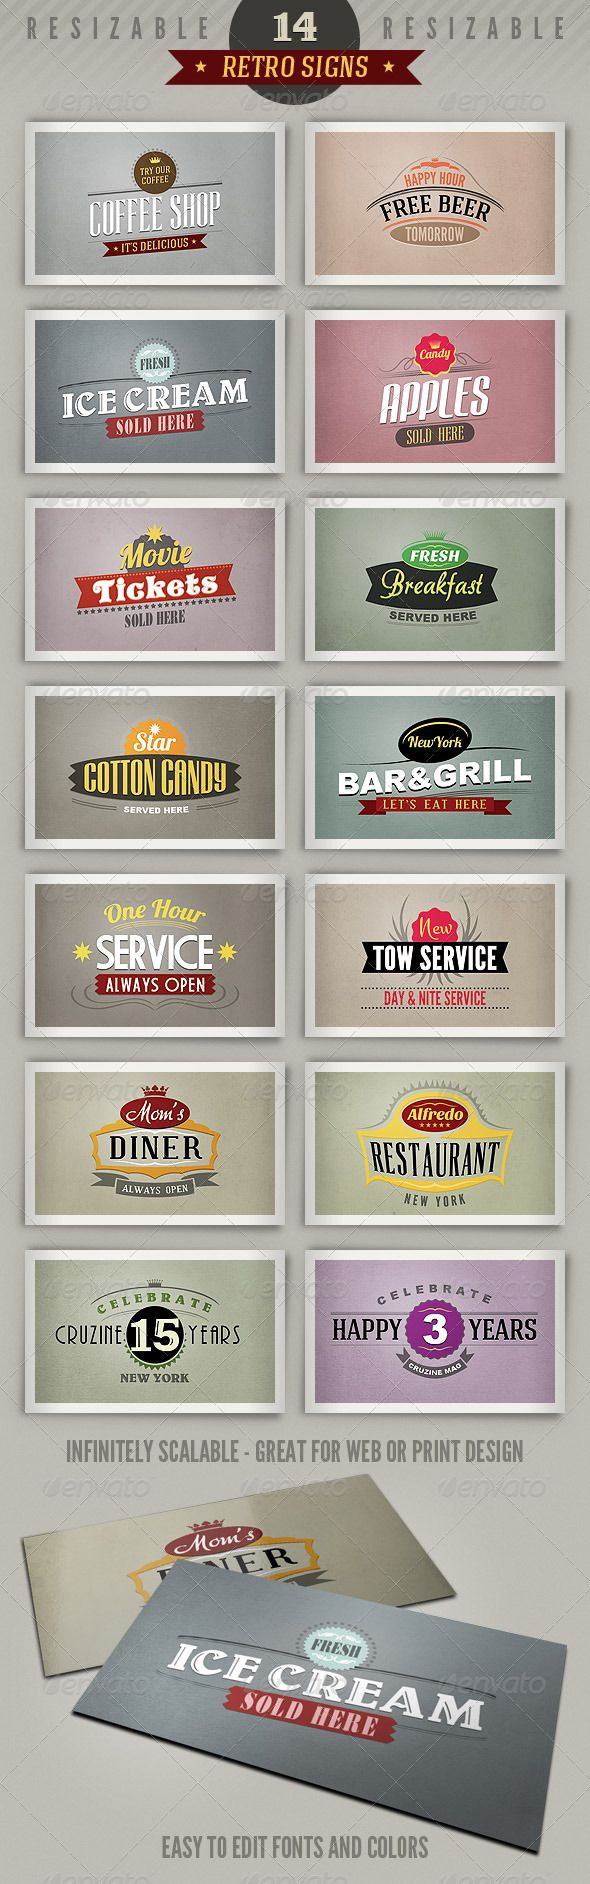 14 retro style signs or banners perfect to use as logos, buttons or as promotion graphics for websites or print designs. A tiny $4 - lush!